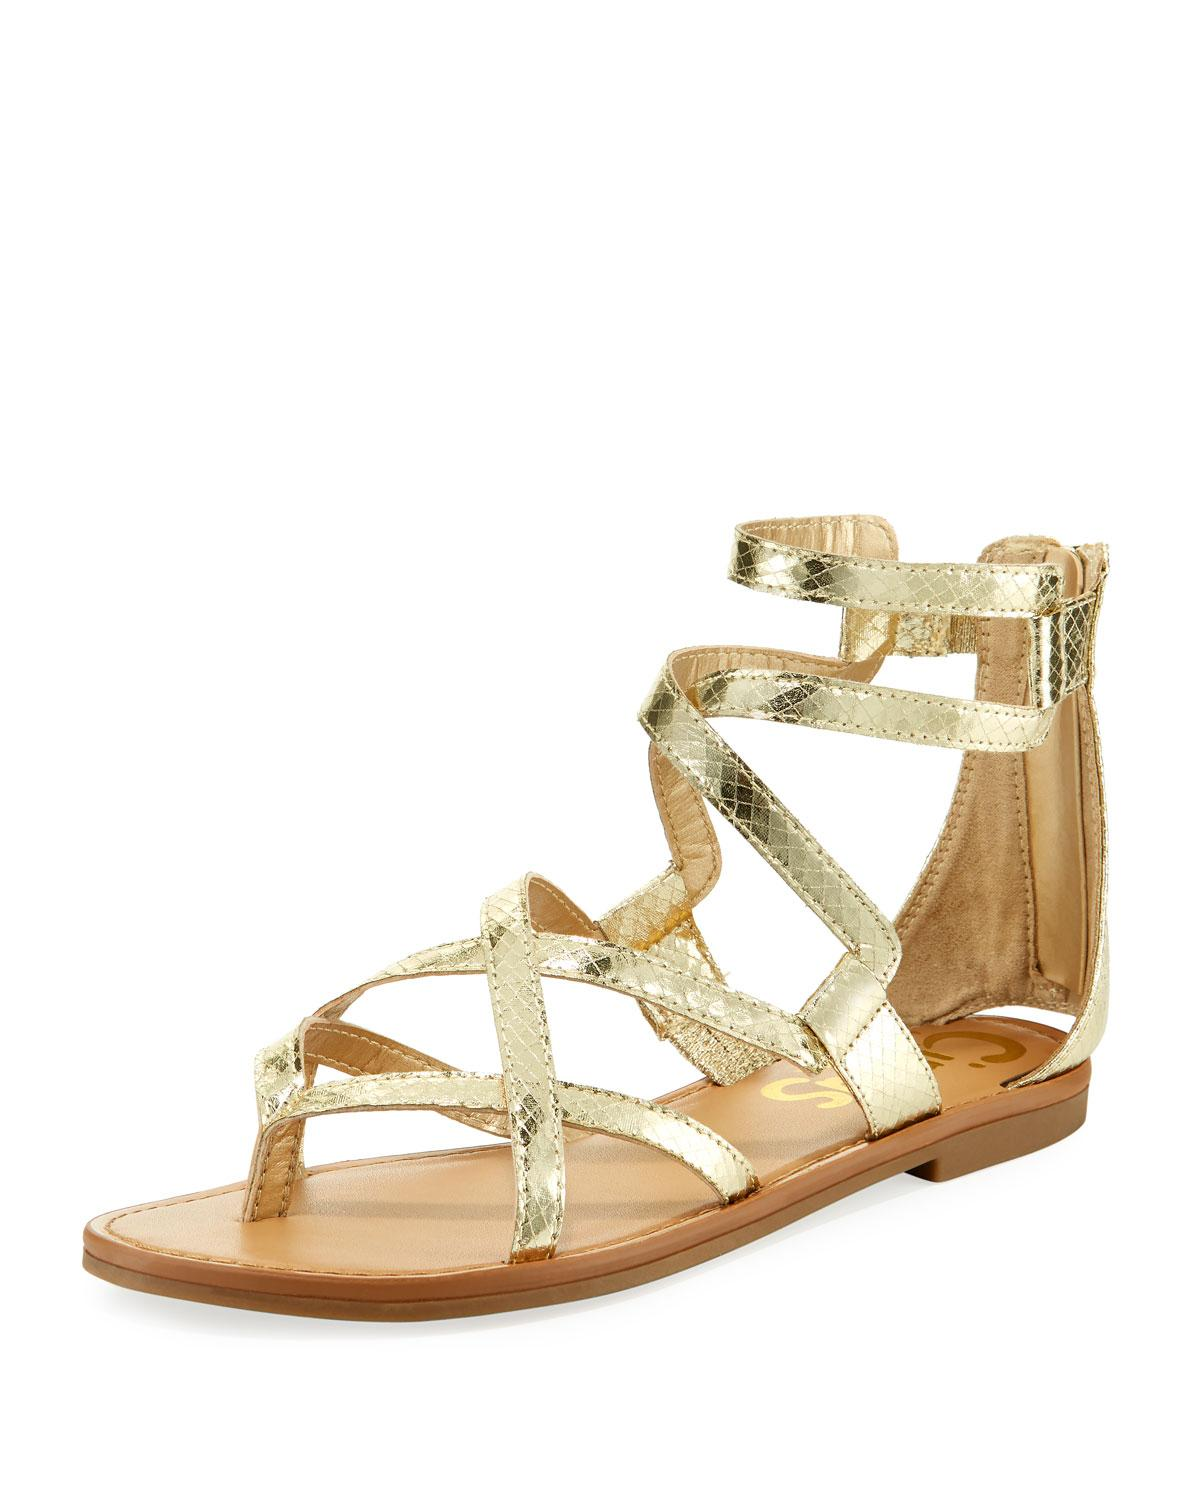 cc17d54226b806 CIRCUS BY SAM EDELMAN. Bevin Metallic Strappy Flat Gladiator Sandal in Gold